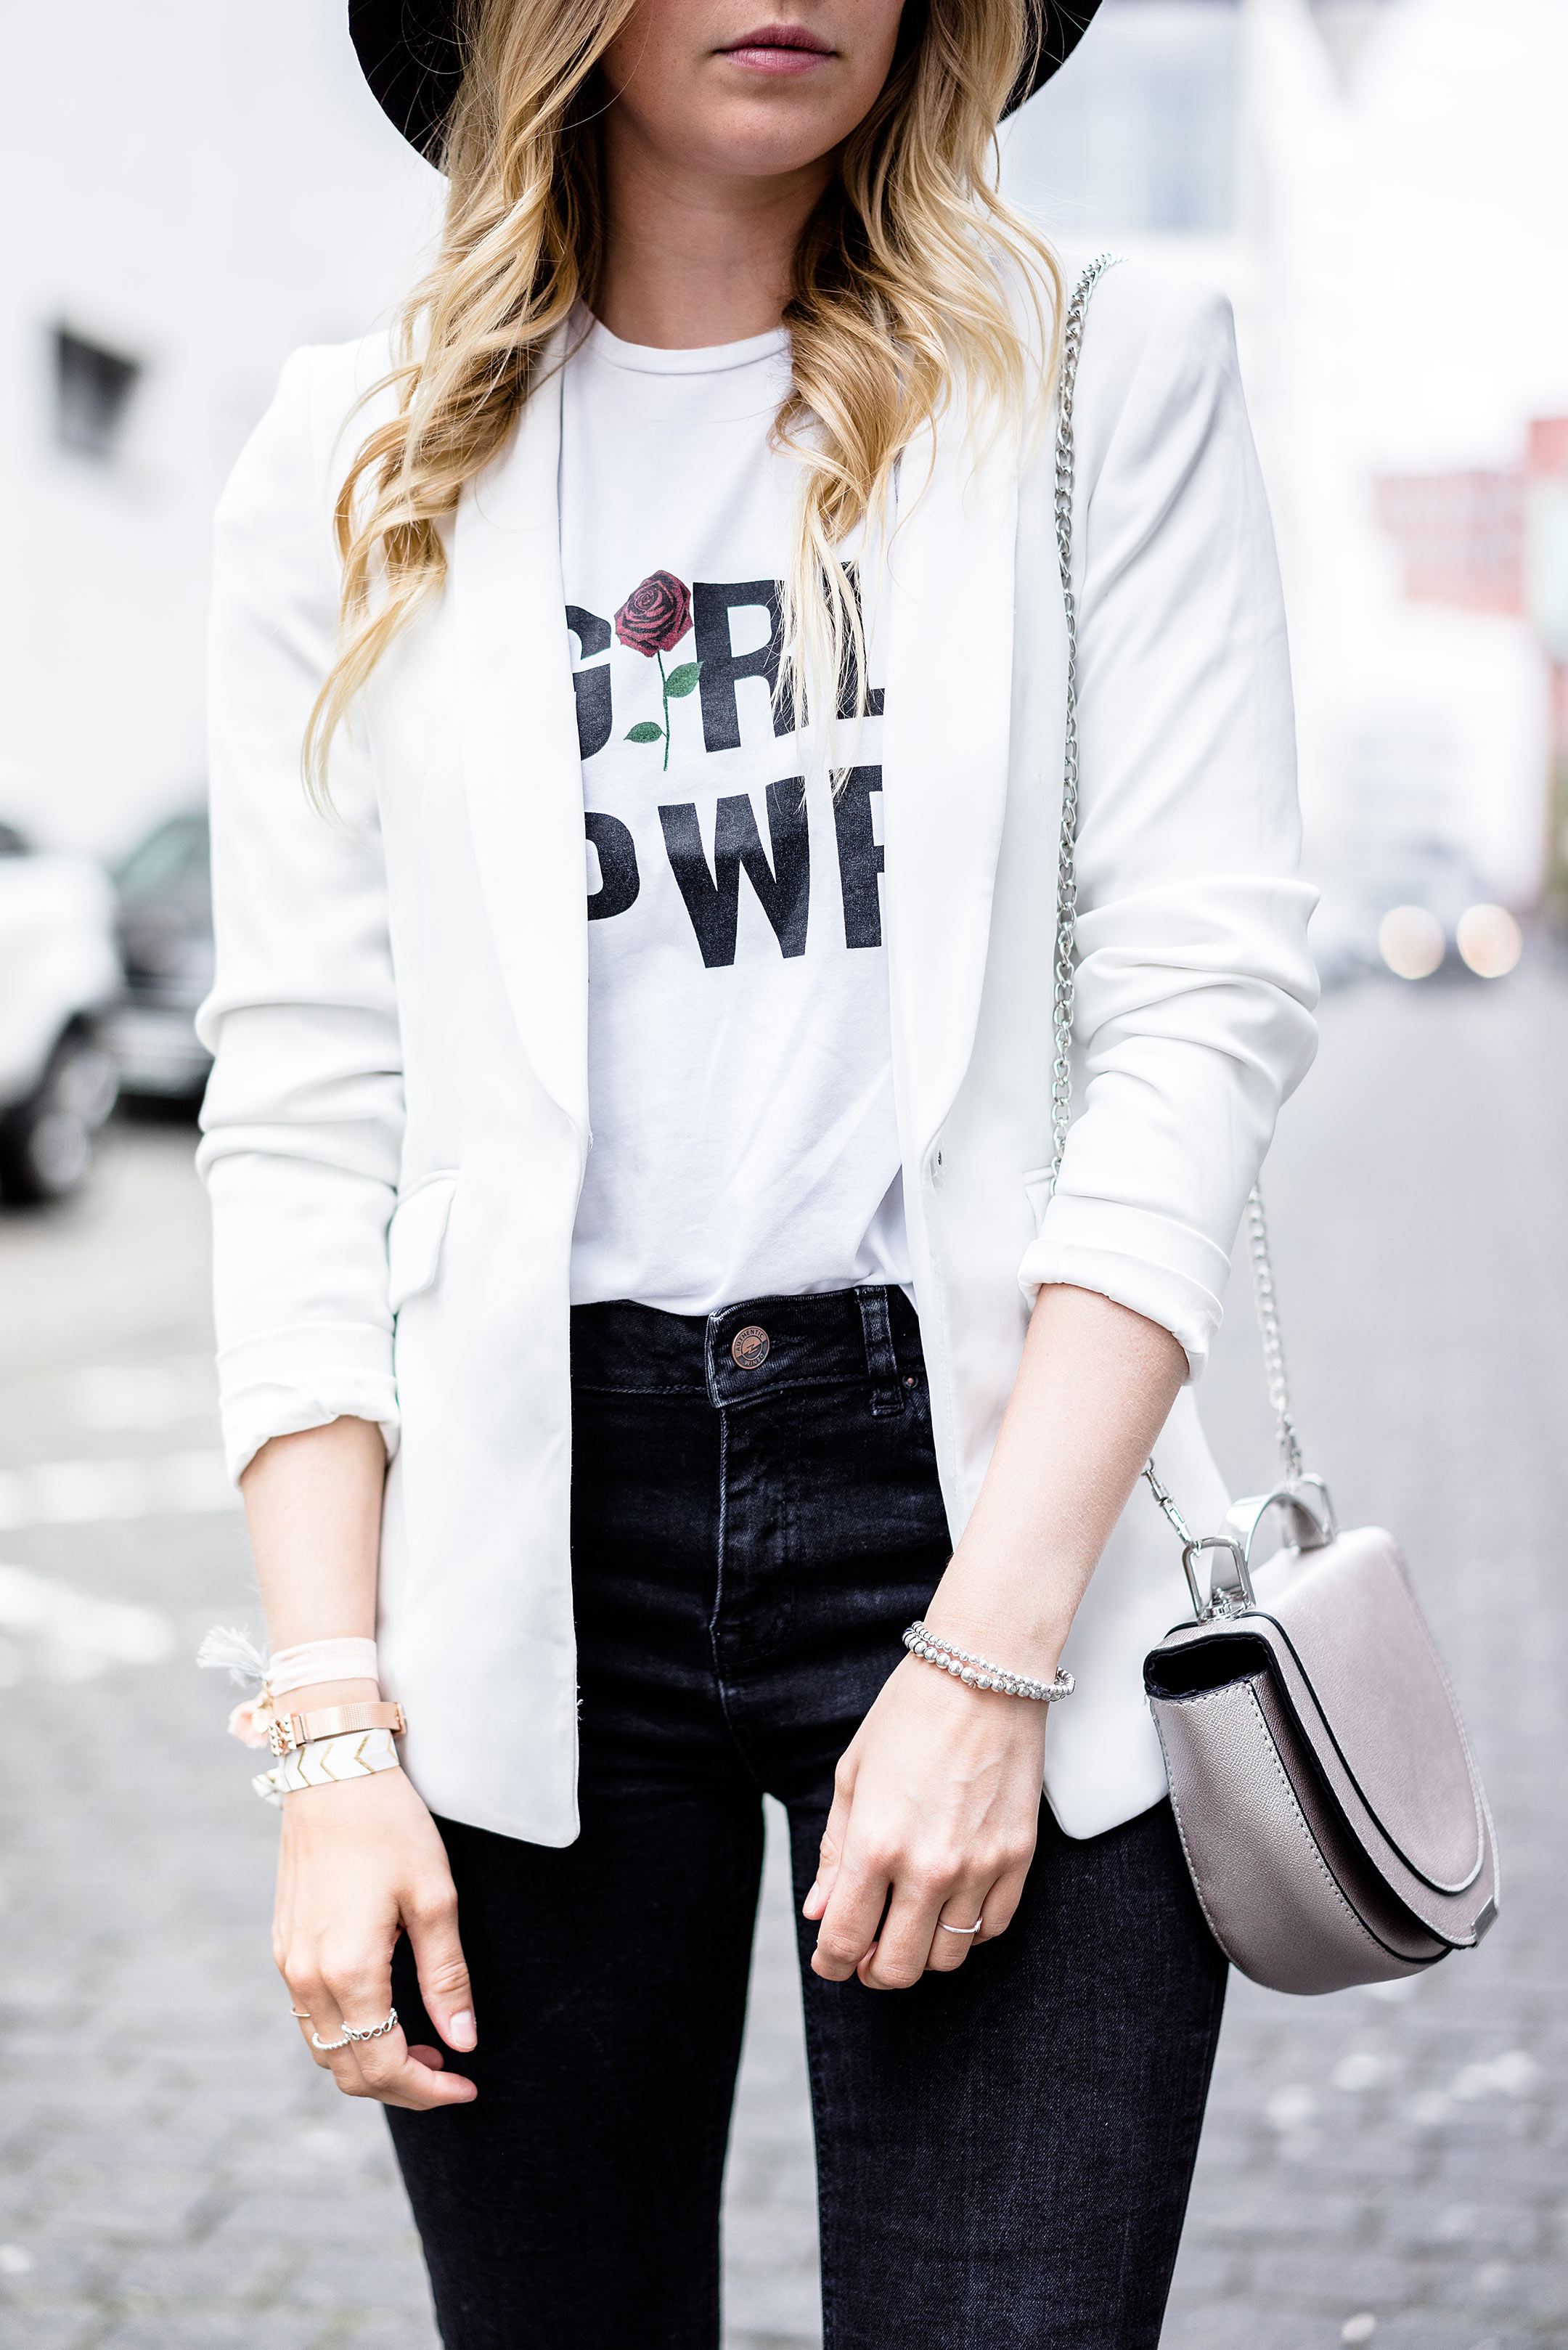 Girl Power Shirt Fashion Blog Düsseldorf Sunnyinga